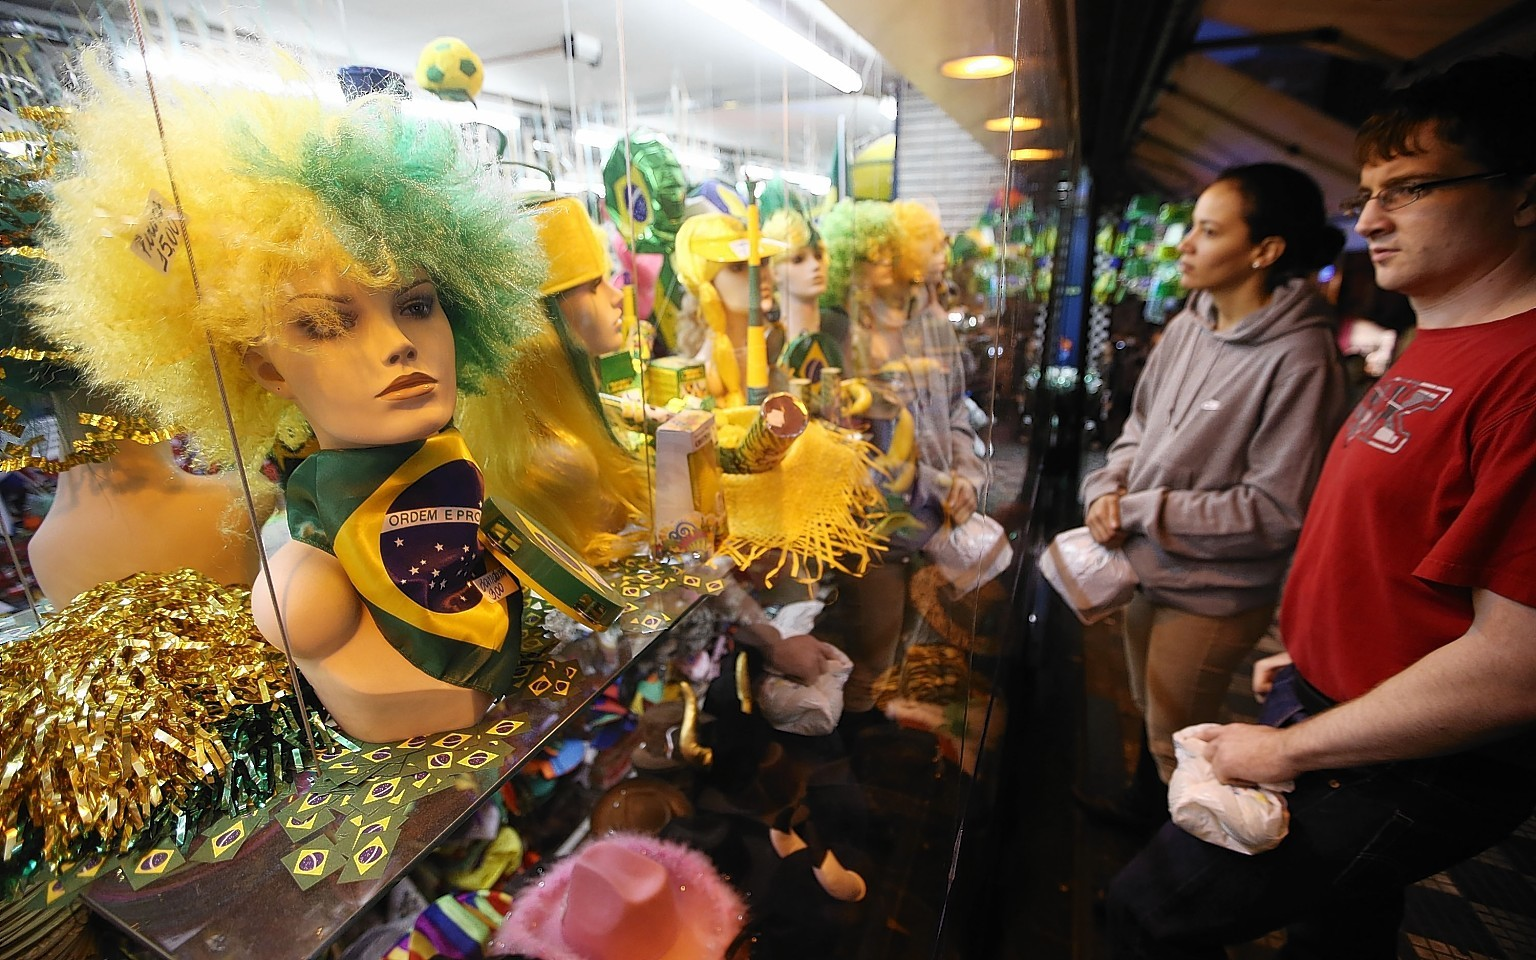 Merchandise for the World Cup in Brazil